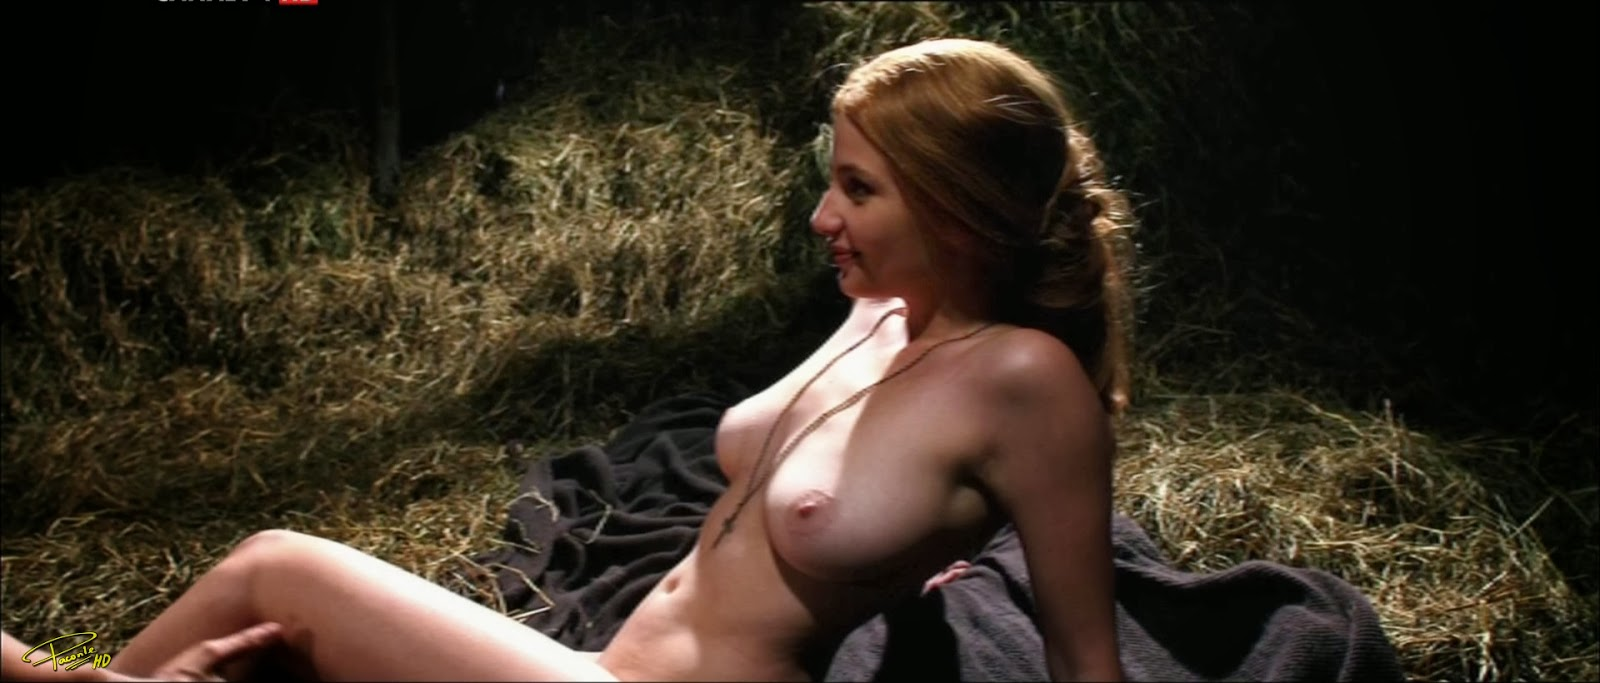 Images of sexy naked actress from the  porncraft image